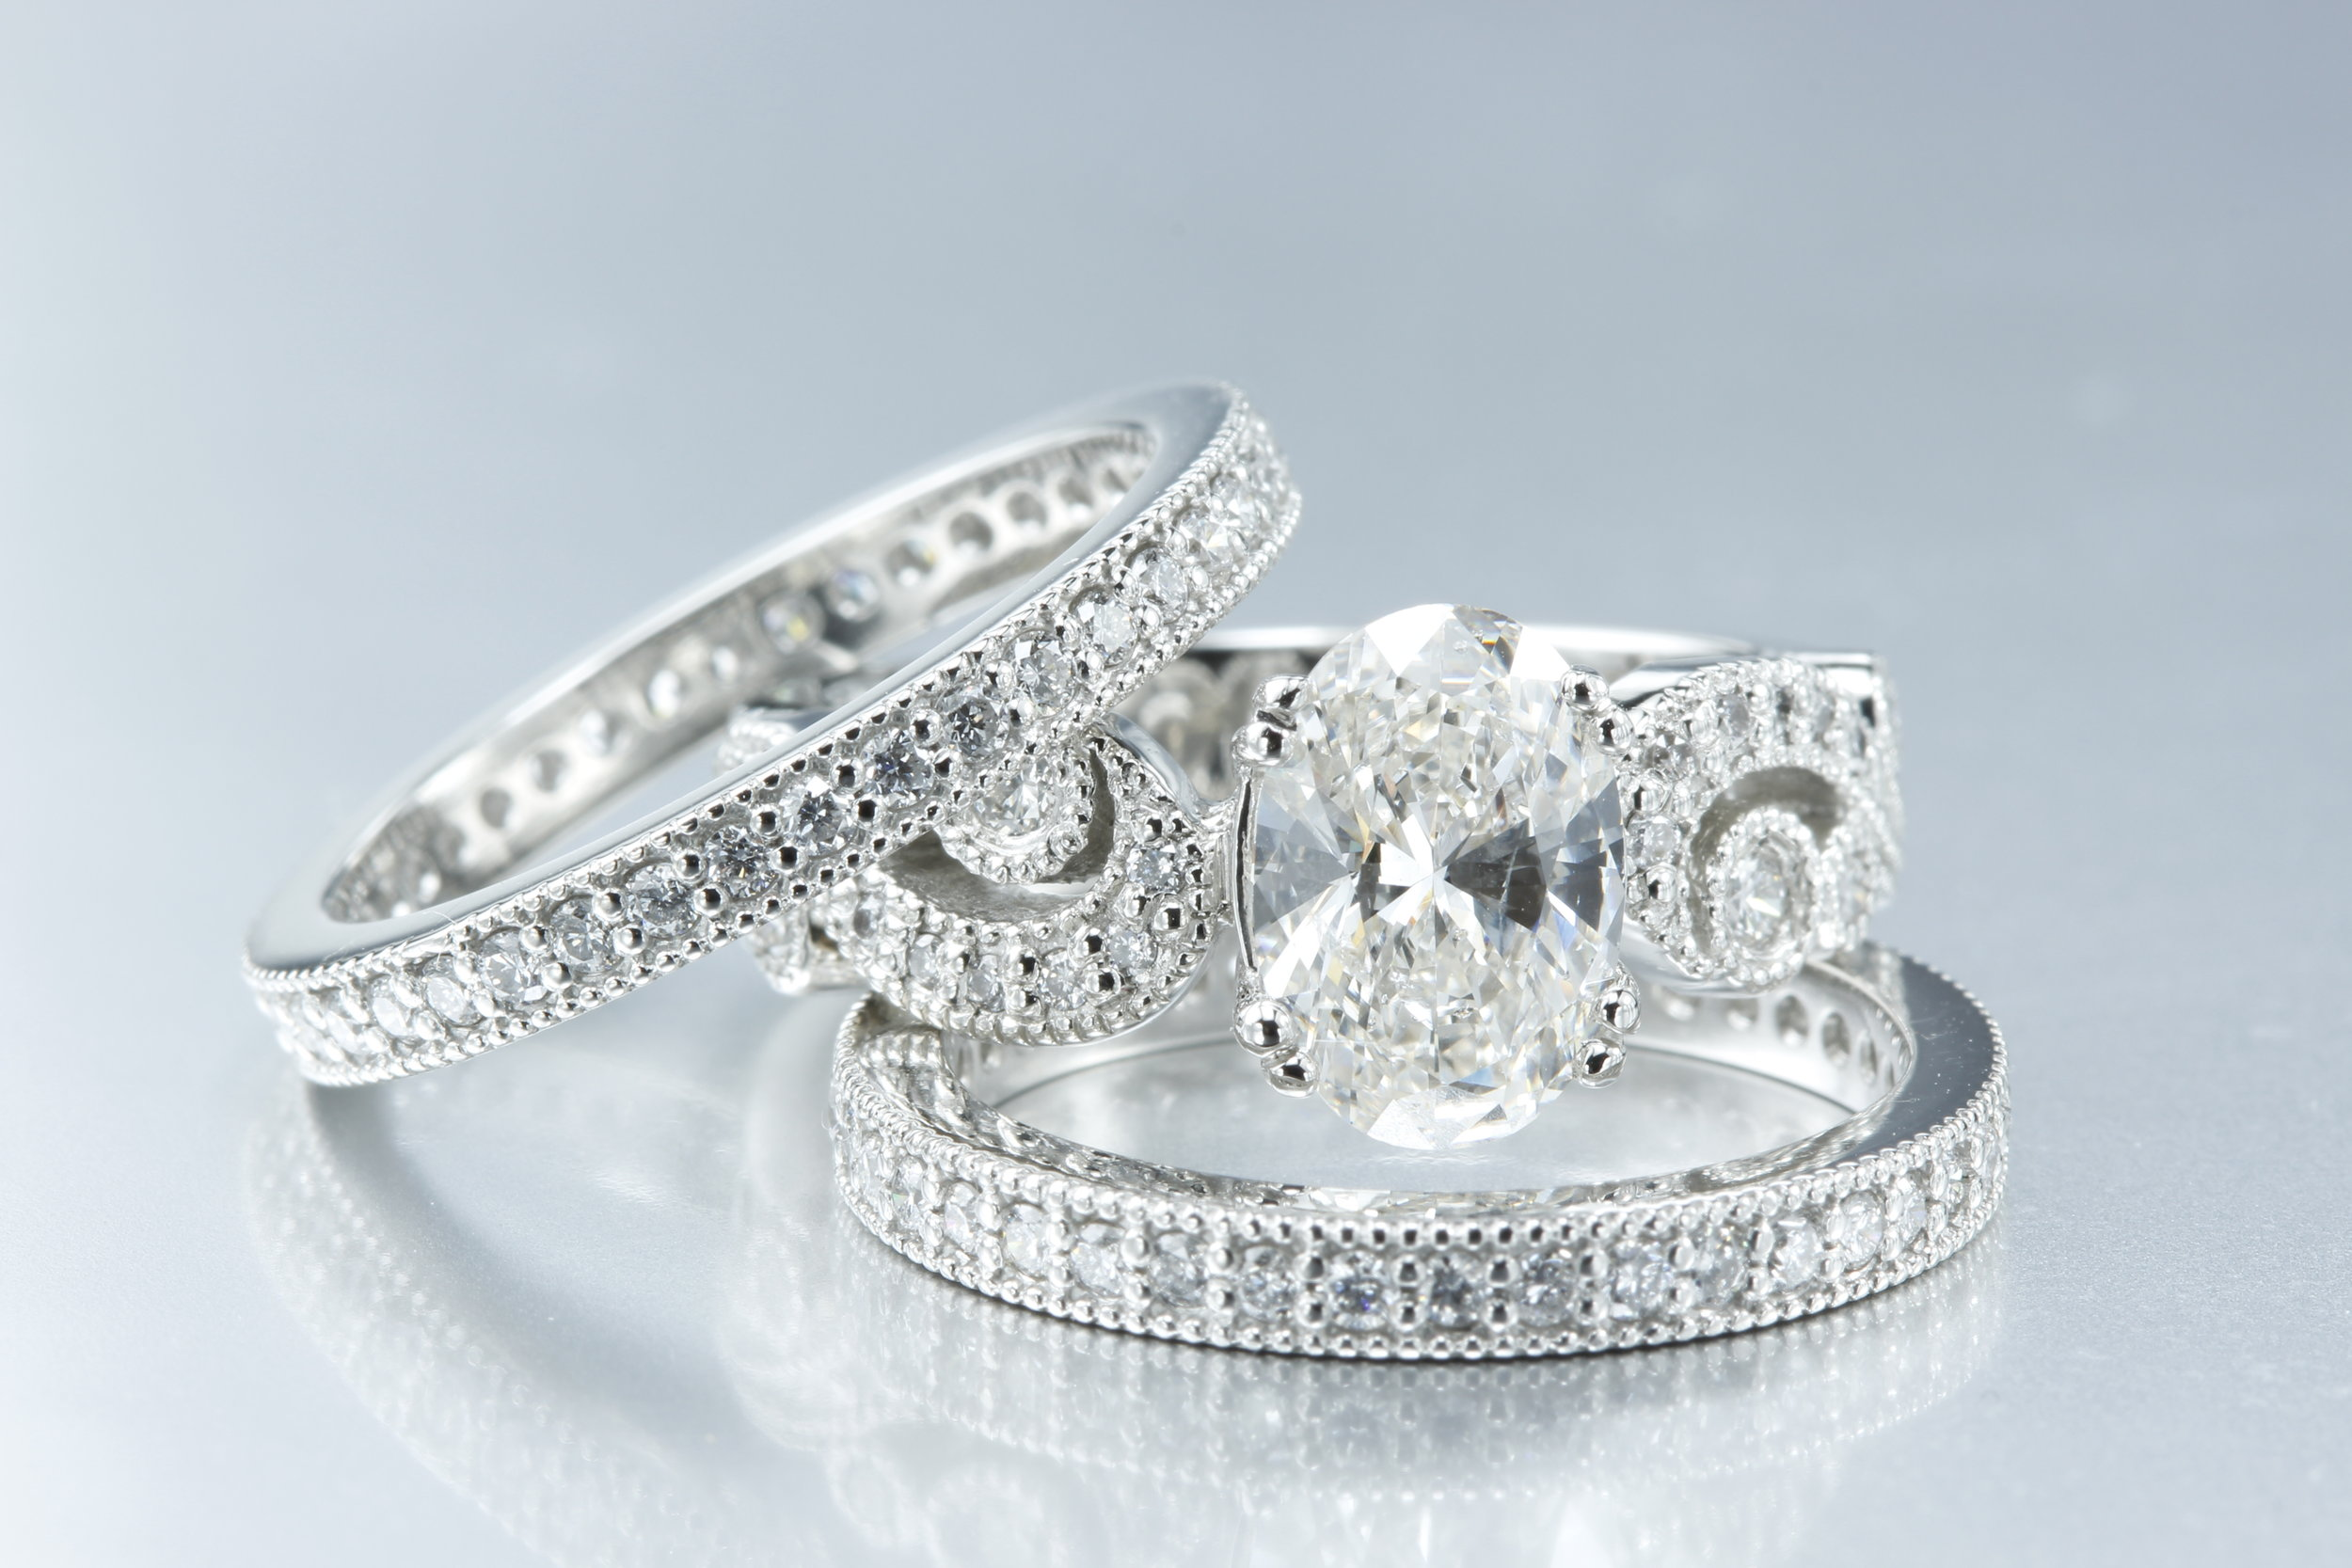 Oval Diamond Center Stone - 3 Piece Set - Paisley design along the band in this oval engagement ring set.